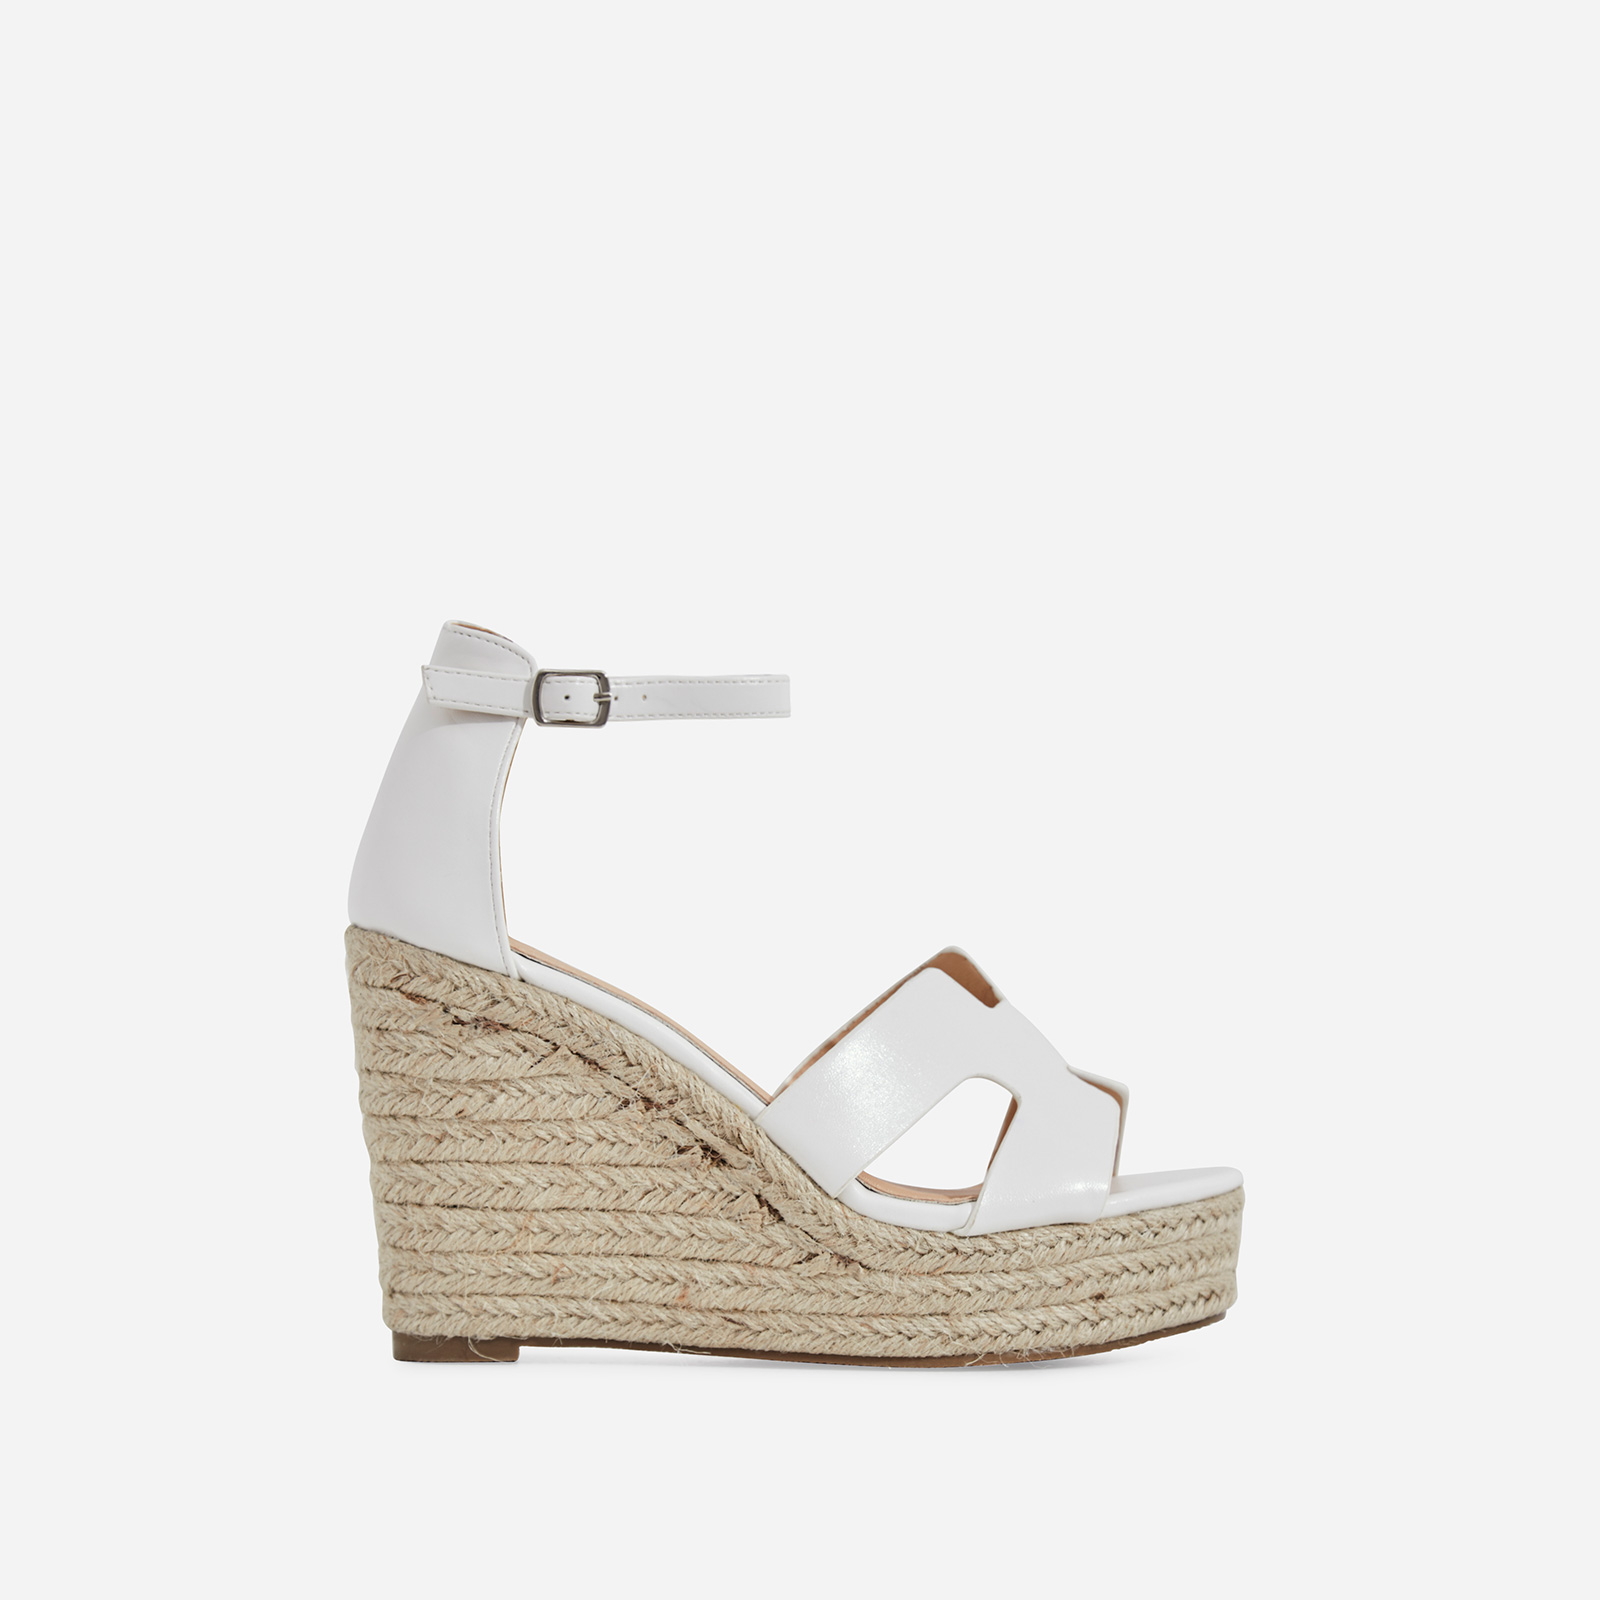 Kayson Platform Espadrille Wedge Block Heel In White Faux Leather